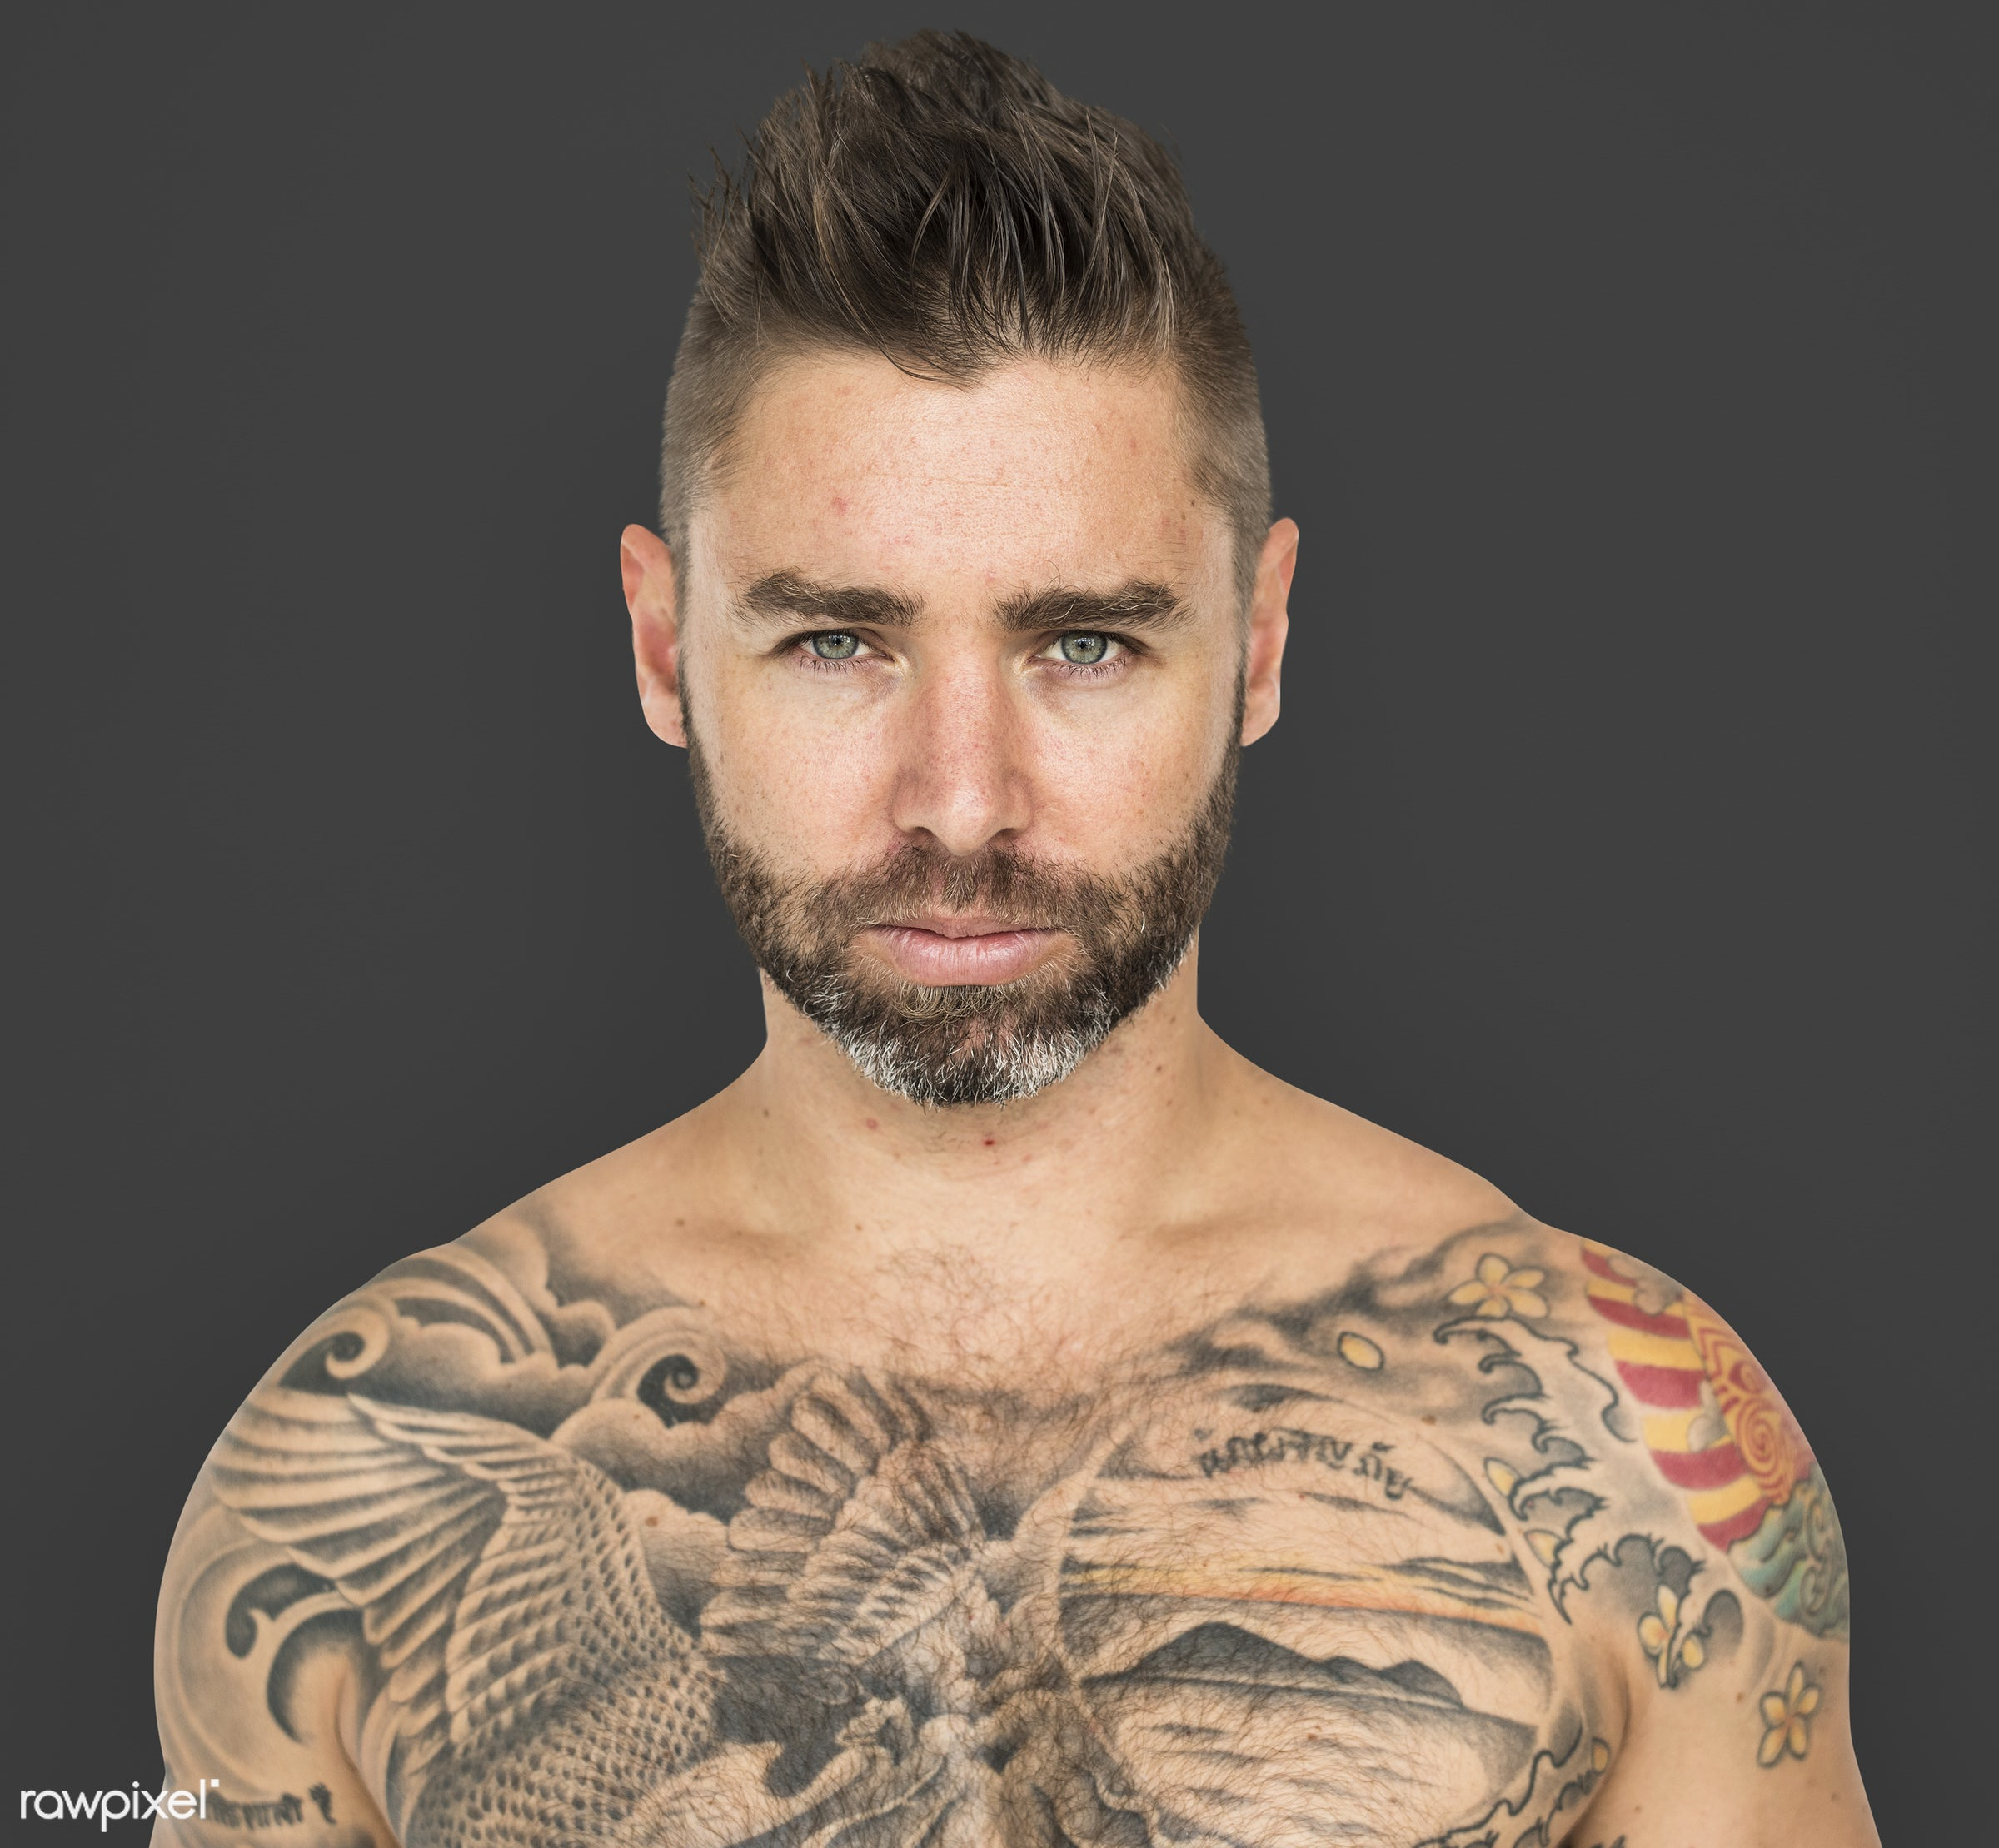 adult, background, bare chest, beard, chest, design, emotion, expression, facial, fit, isolated, male, man, mood, moustache...